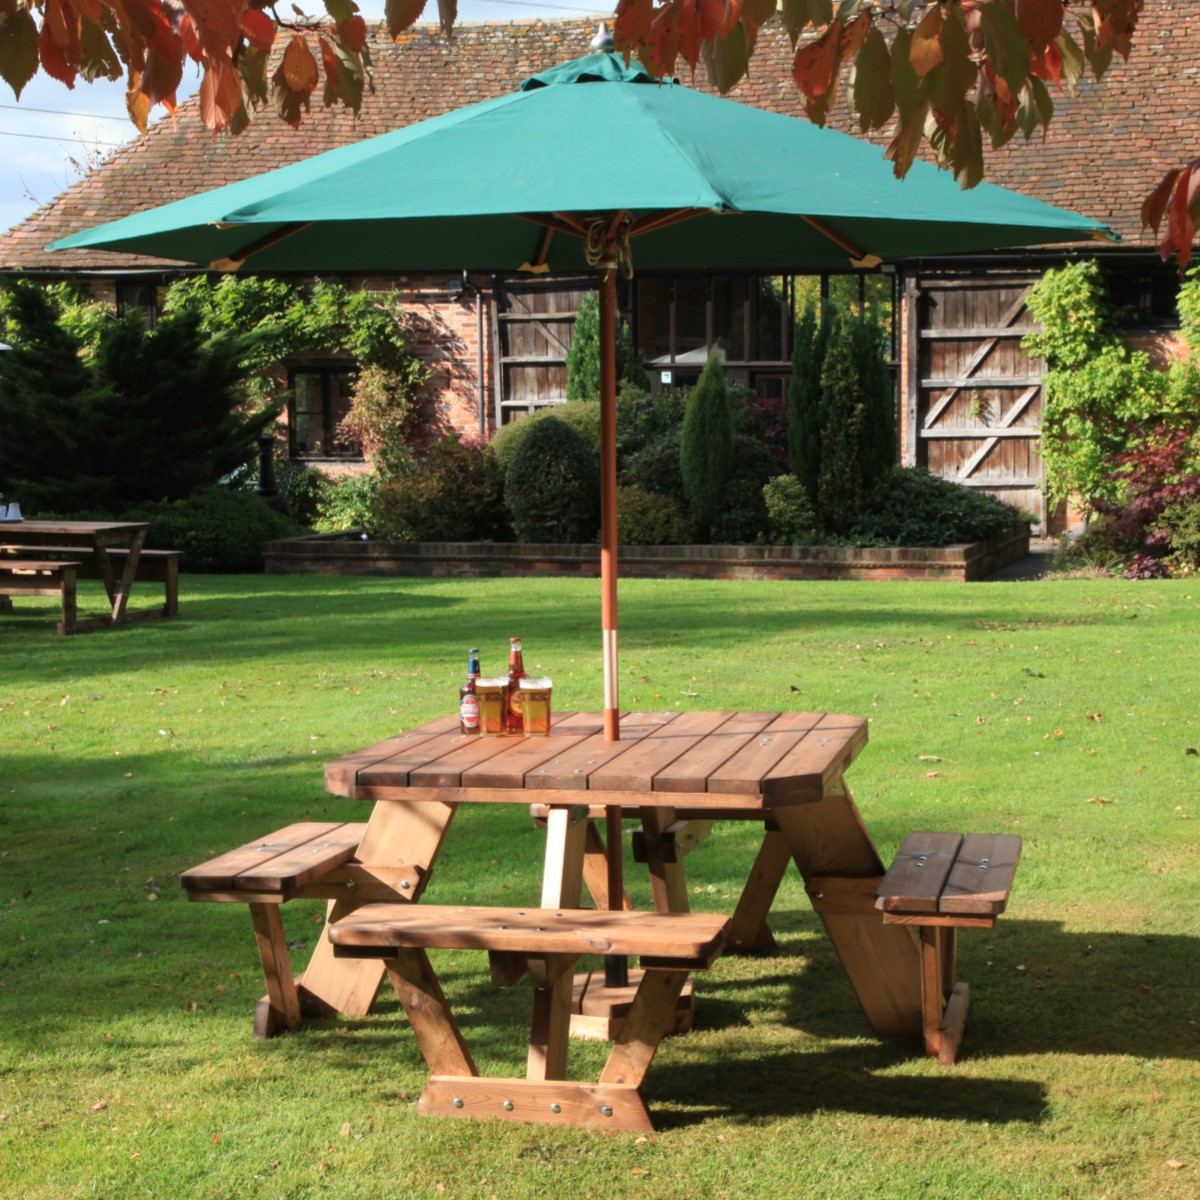 A square wooden 8 seater picnic table with a green parasol located on a lawn